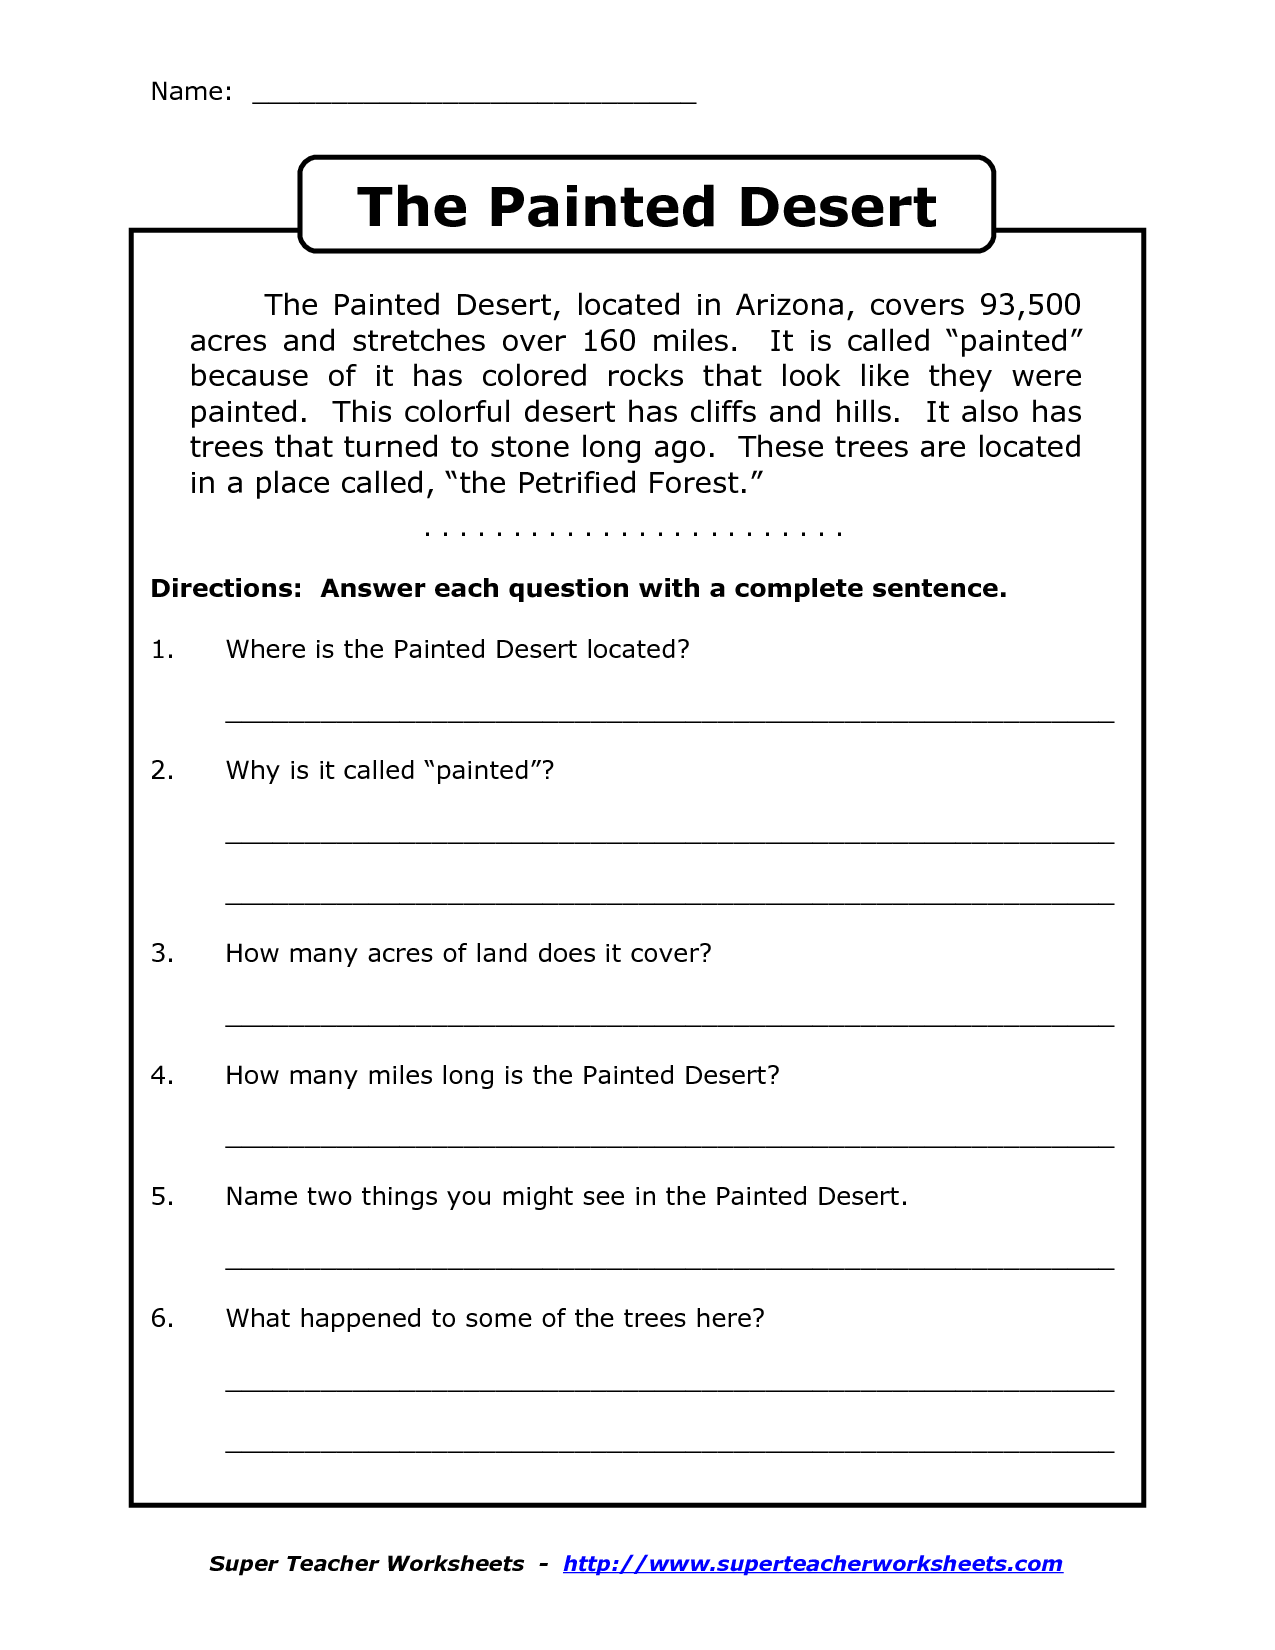 Worksheets Free Comprehension Worksheets For Grade 3 reading worksheets for 4th grade comprehension 3 name the painted desert